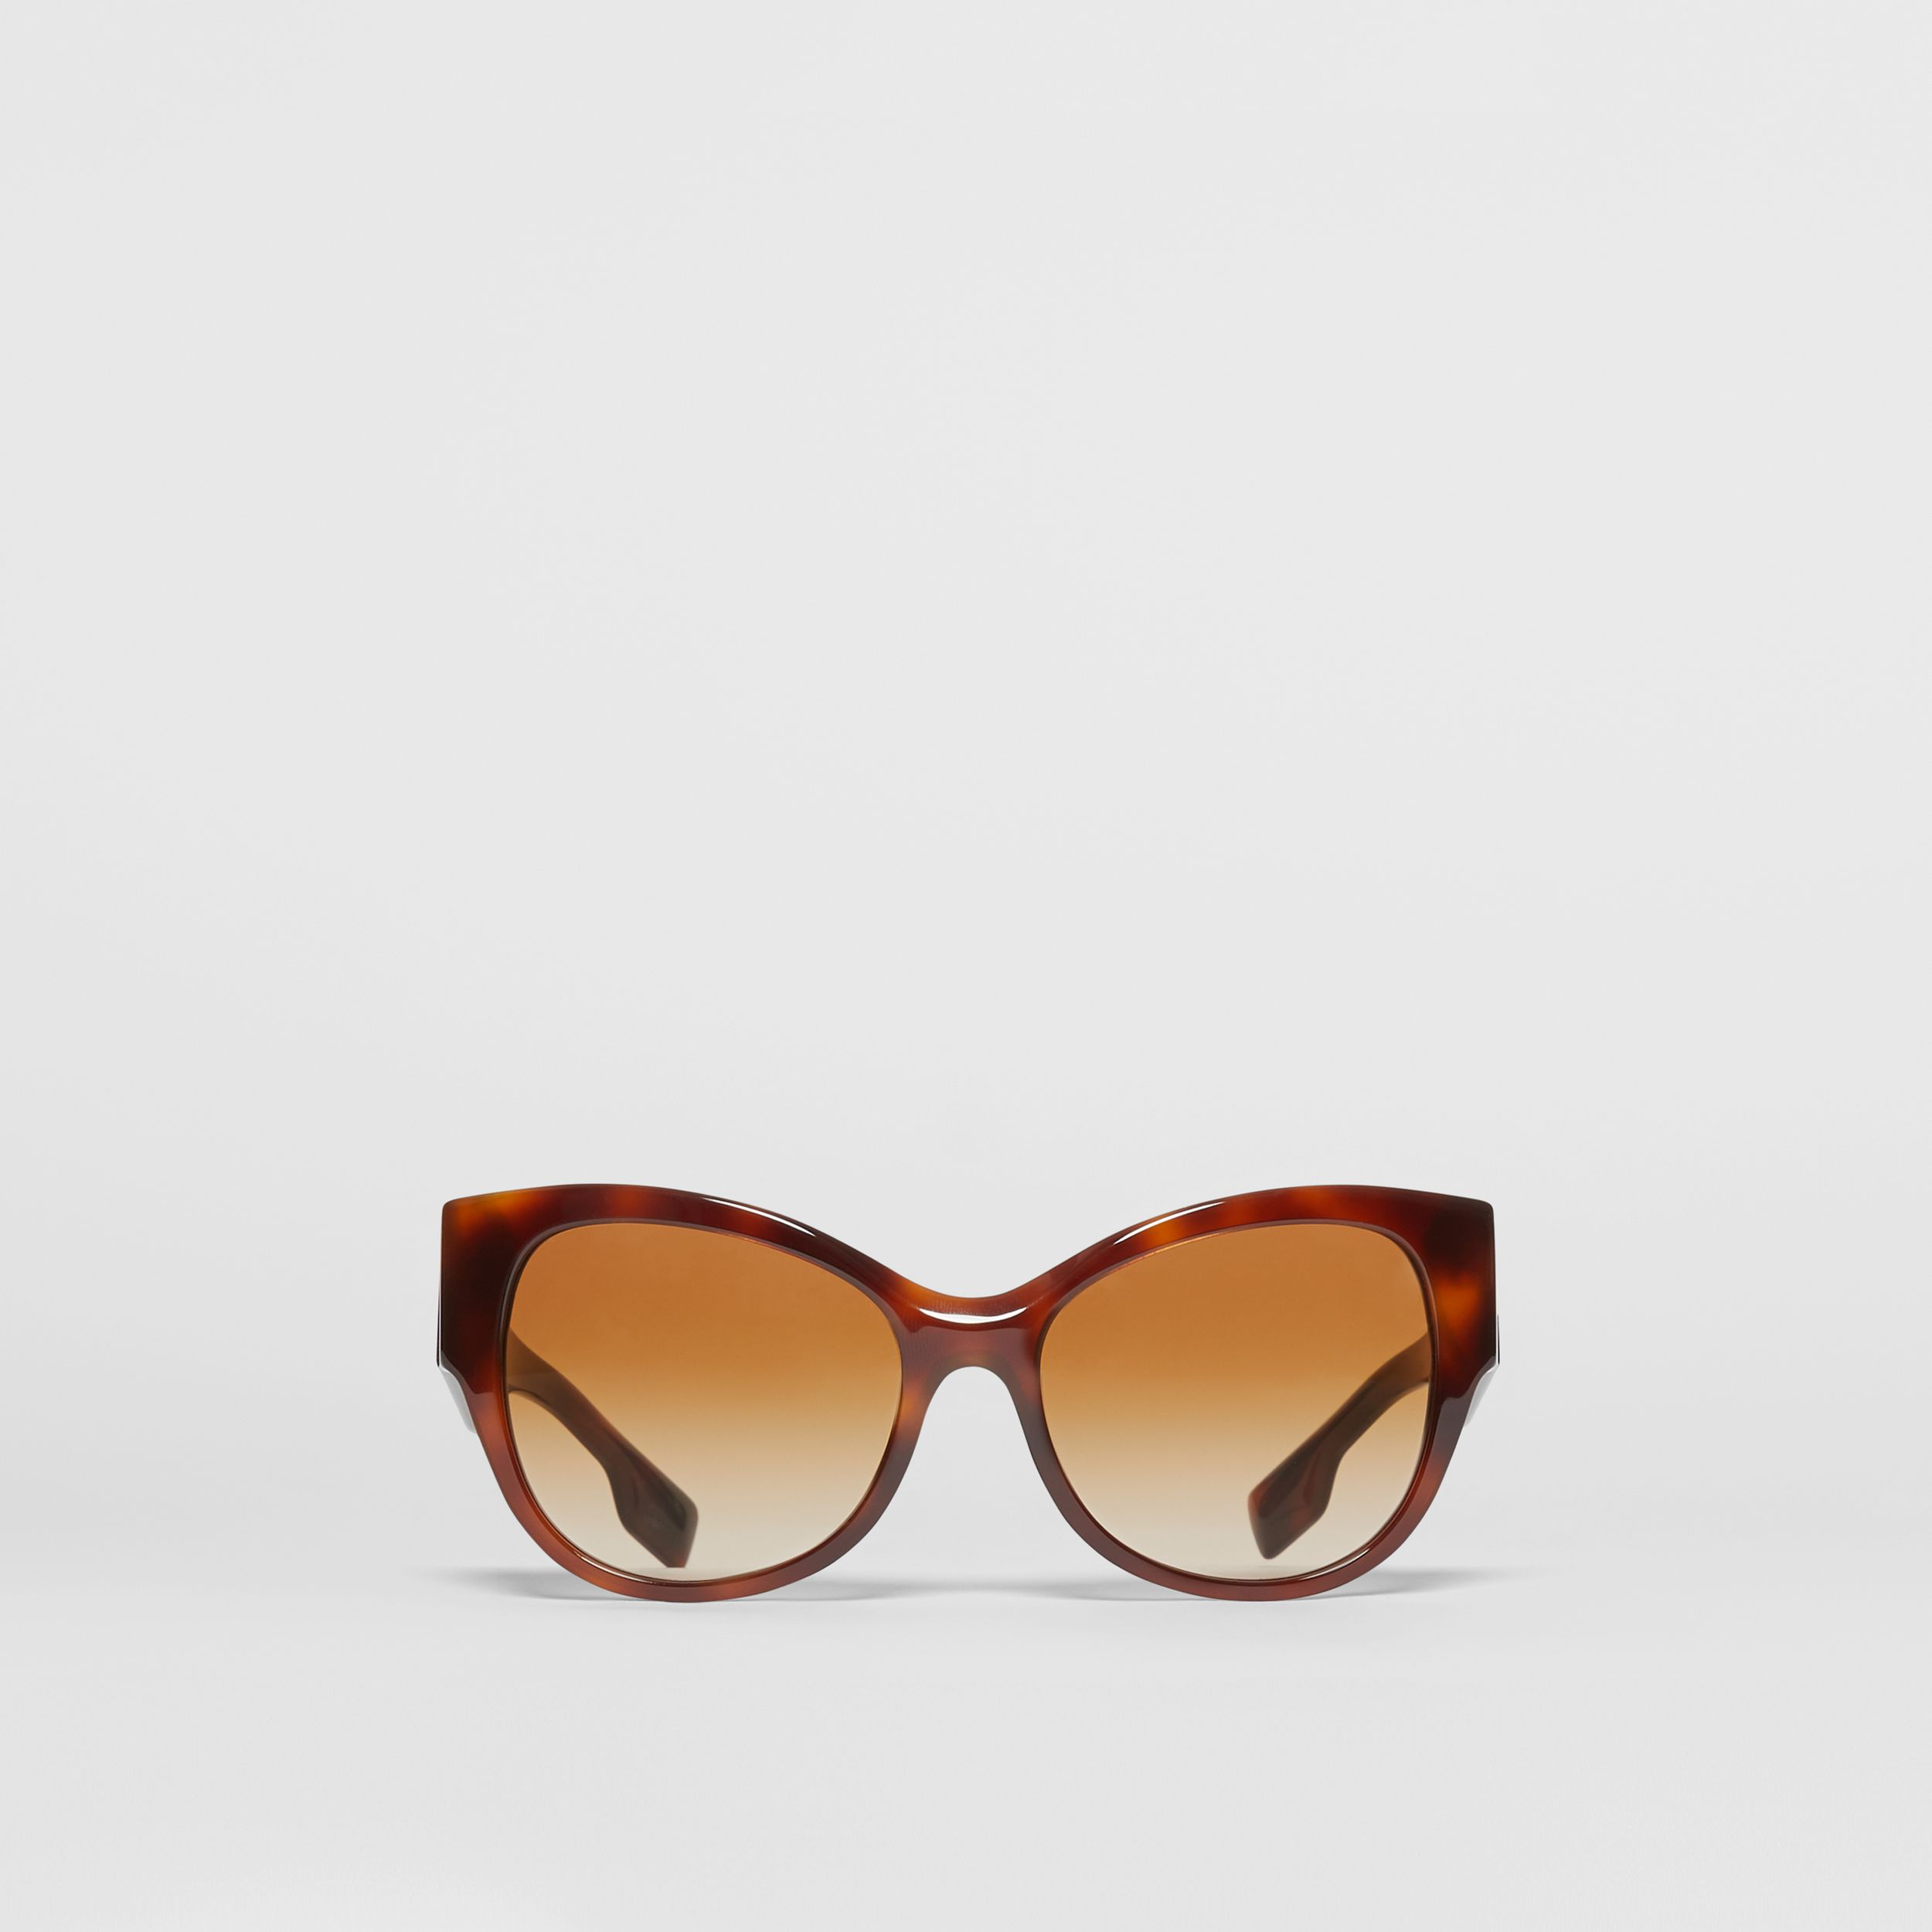 Butterfly Frame Sunglasses in Tortoise Amber - Women | Burberry - 1